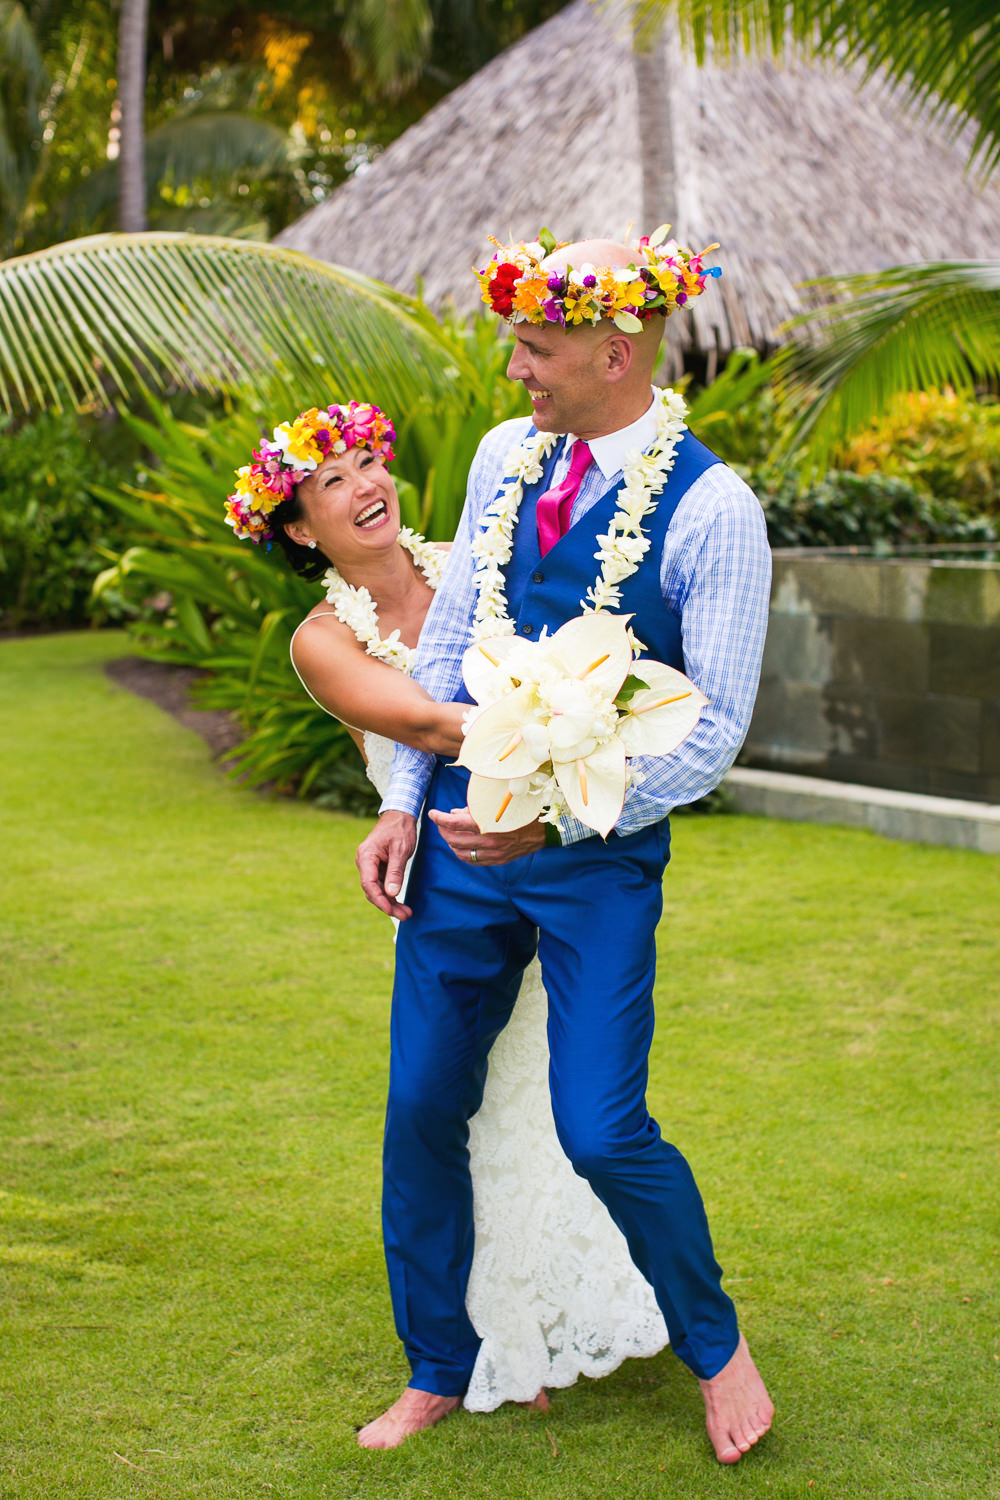 Four Seasons Bora Bora Wedding - Barefoot in the grass with joy